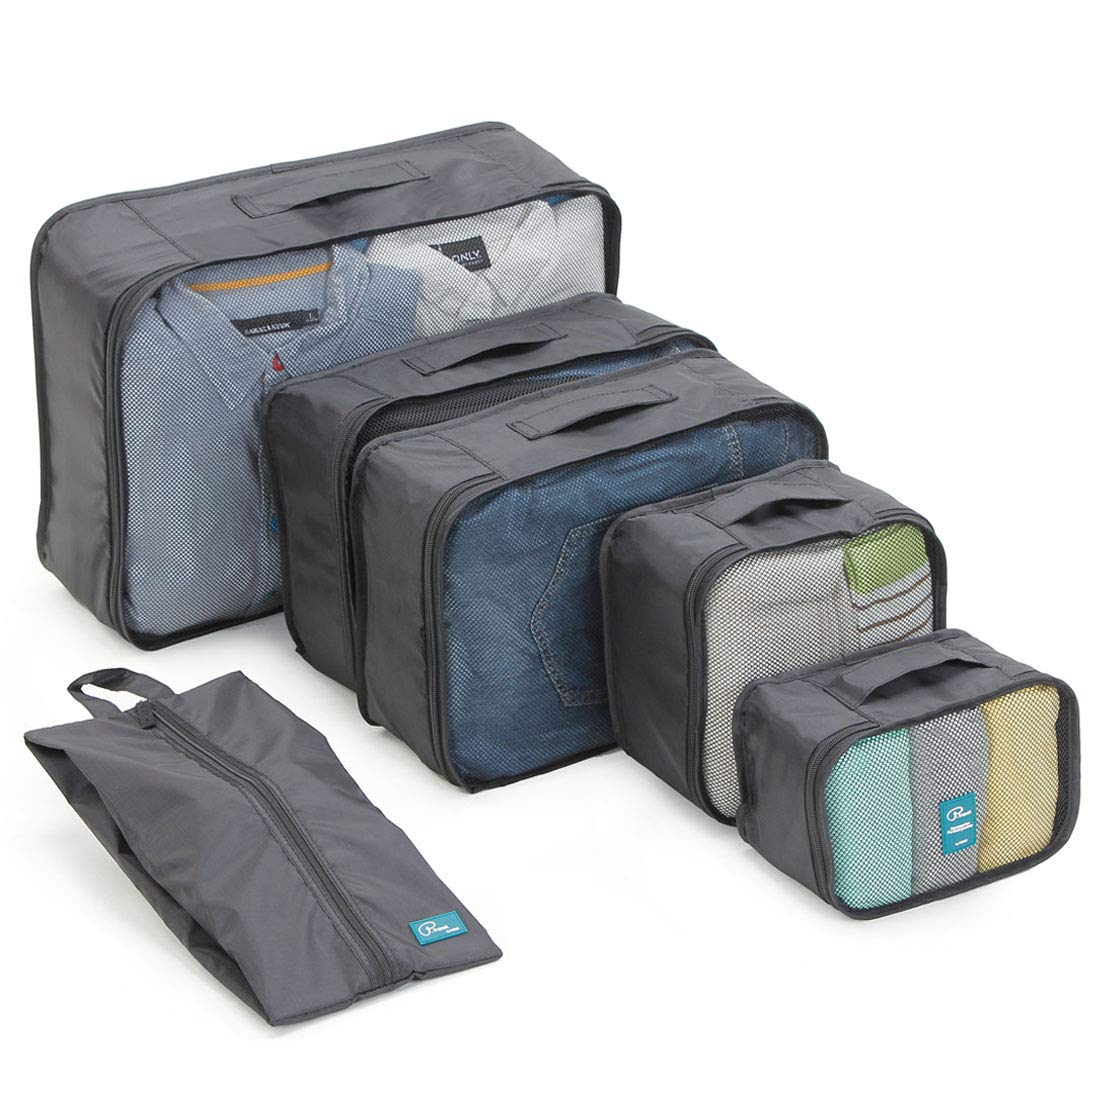 6 Set Packing Cubes/ Travel Cubes- Travel Organizers with ShoesBag by P.travel